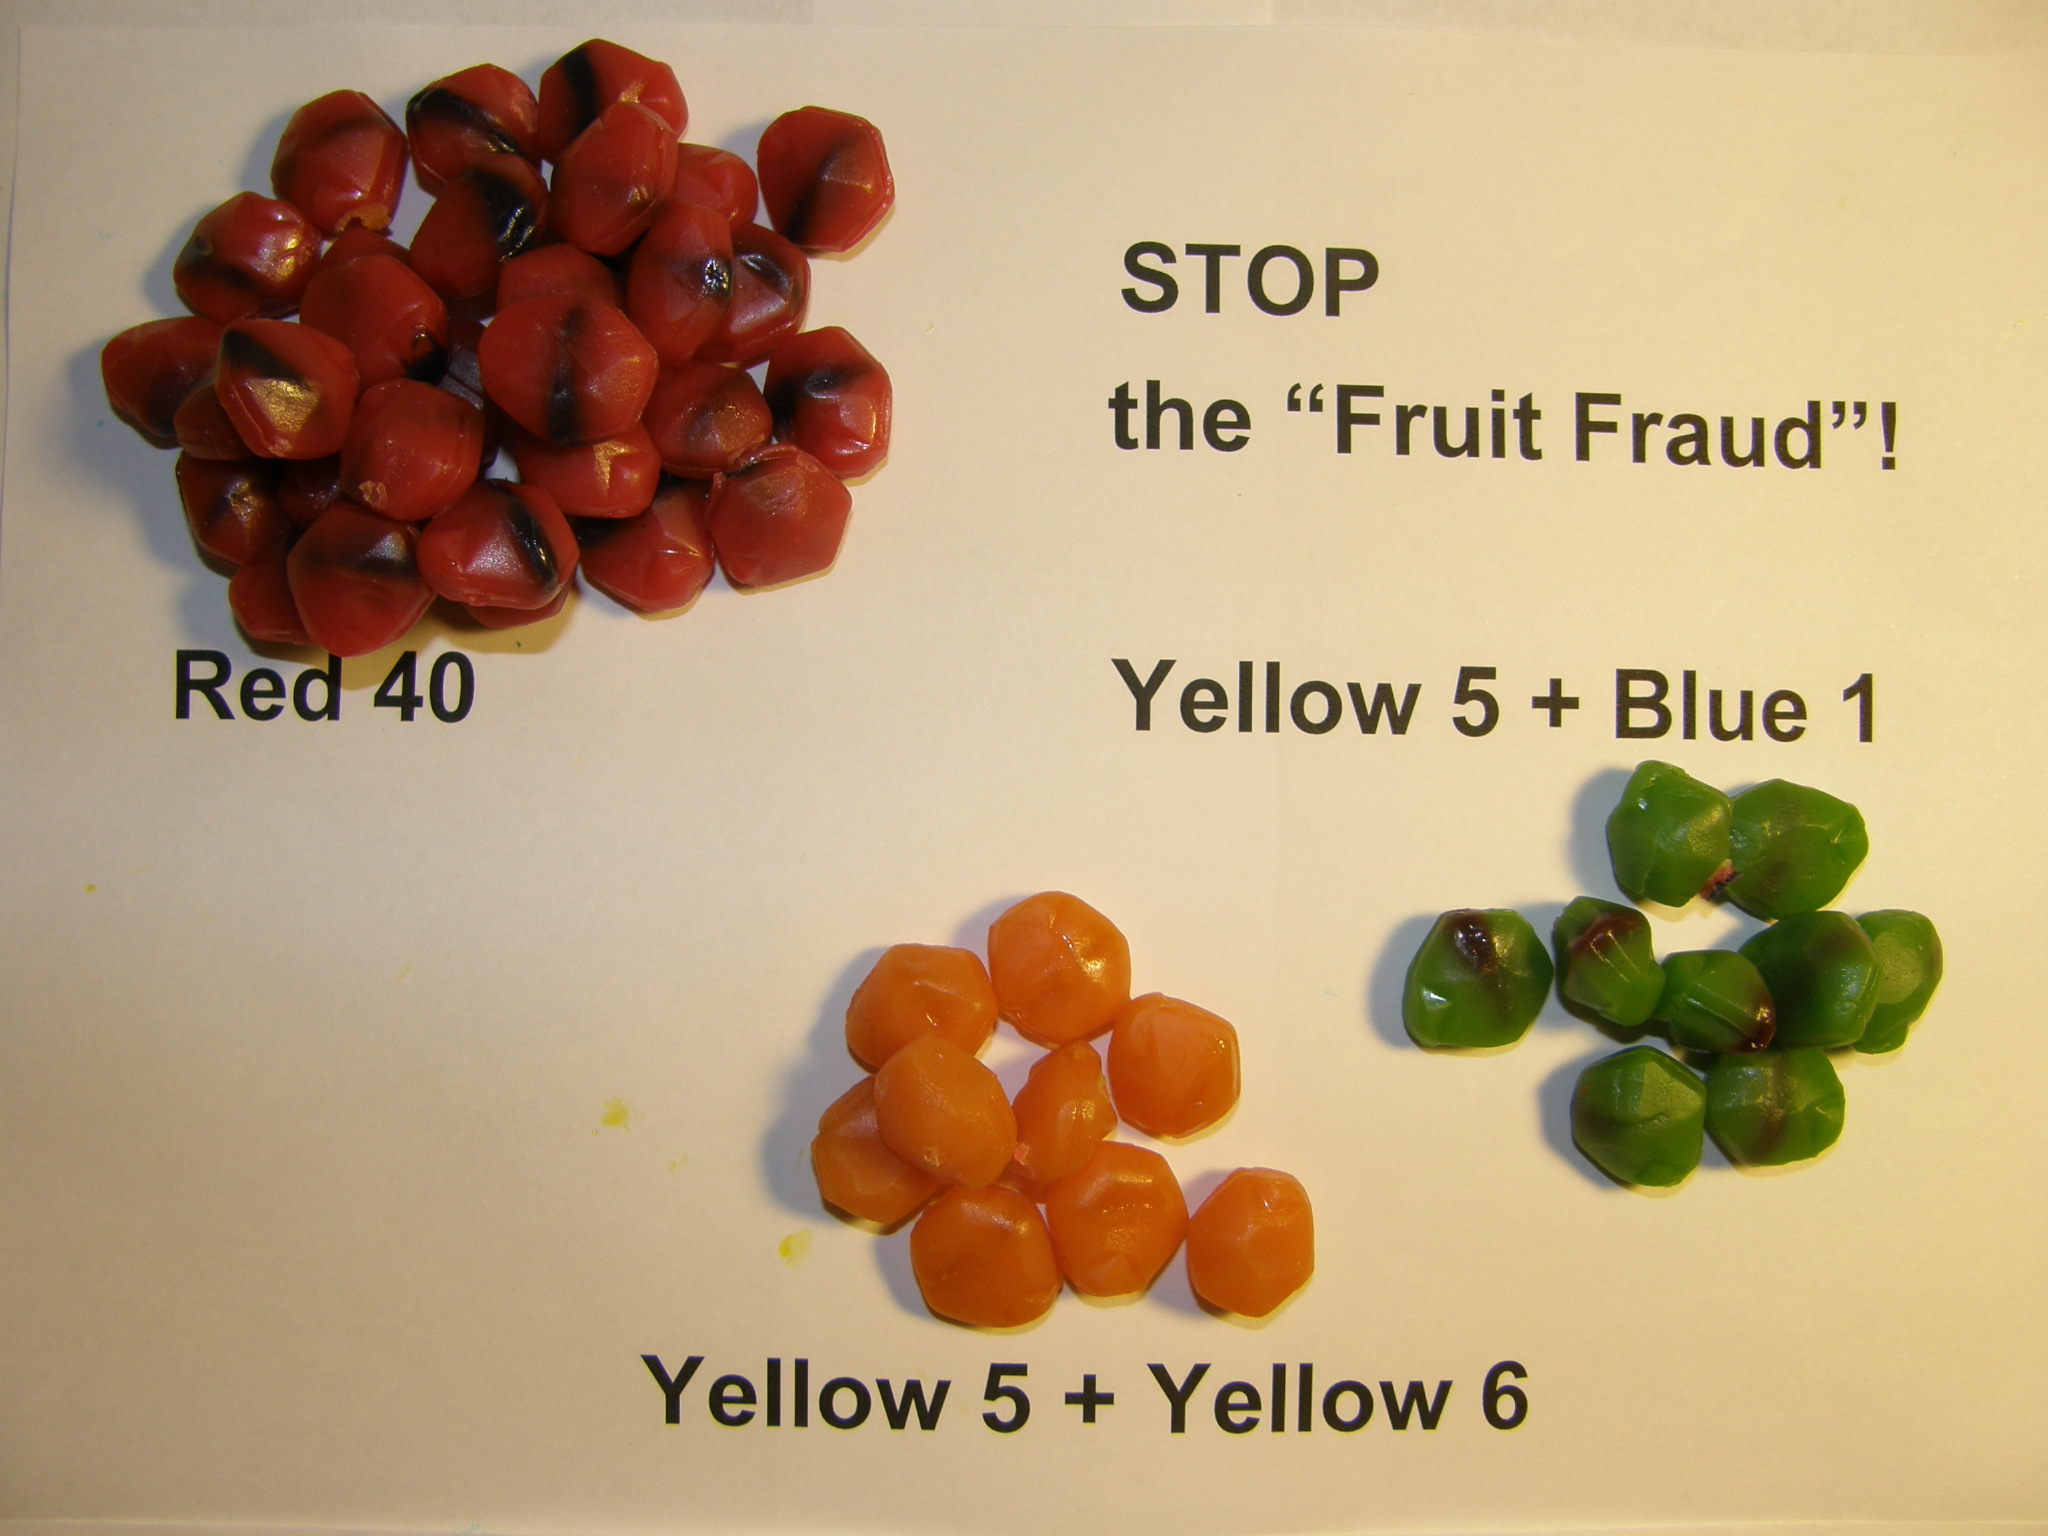 Fruit Gushers sorted by color for the analysis